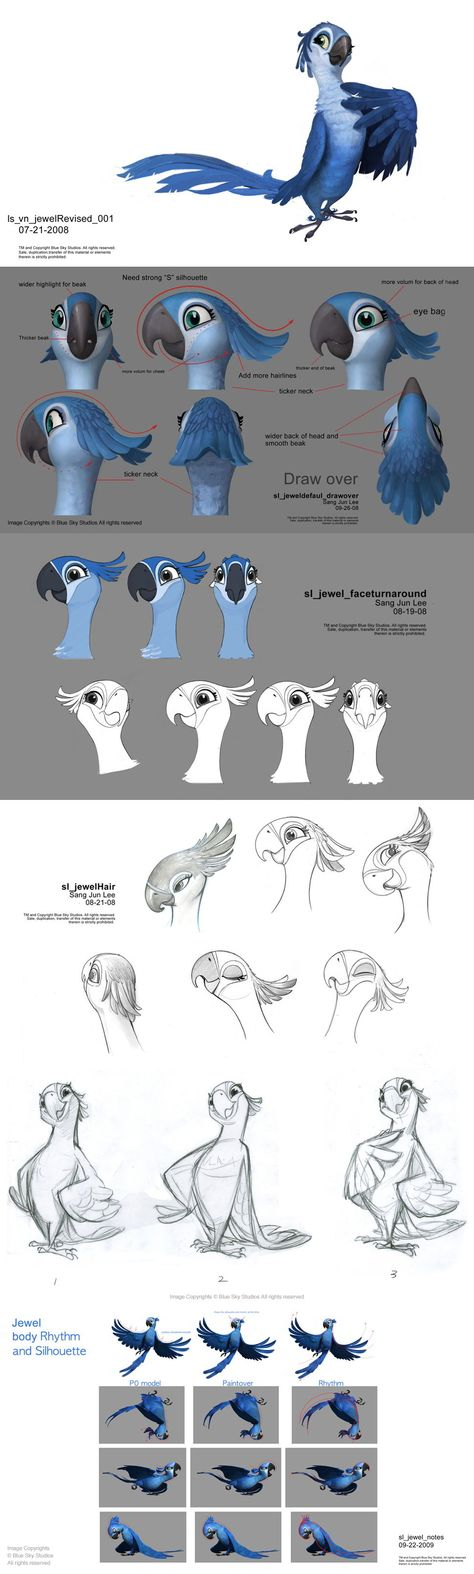 """Jewel, Sangjun Lee  """"Rio"""" was... not so good, IMO, but the designs of all the avian characters, especially Jewel, were very nice.  (Still, """"hair""""?!?)"""